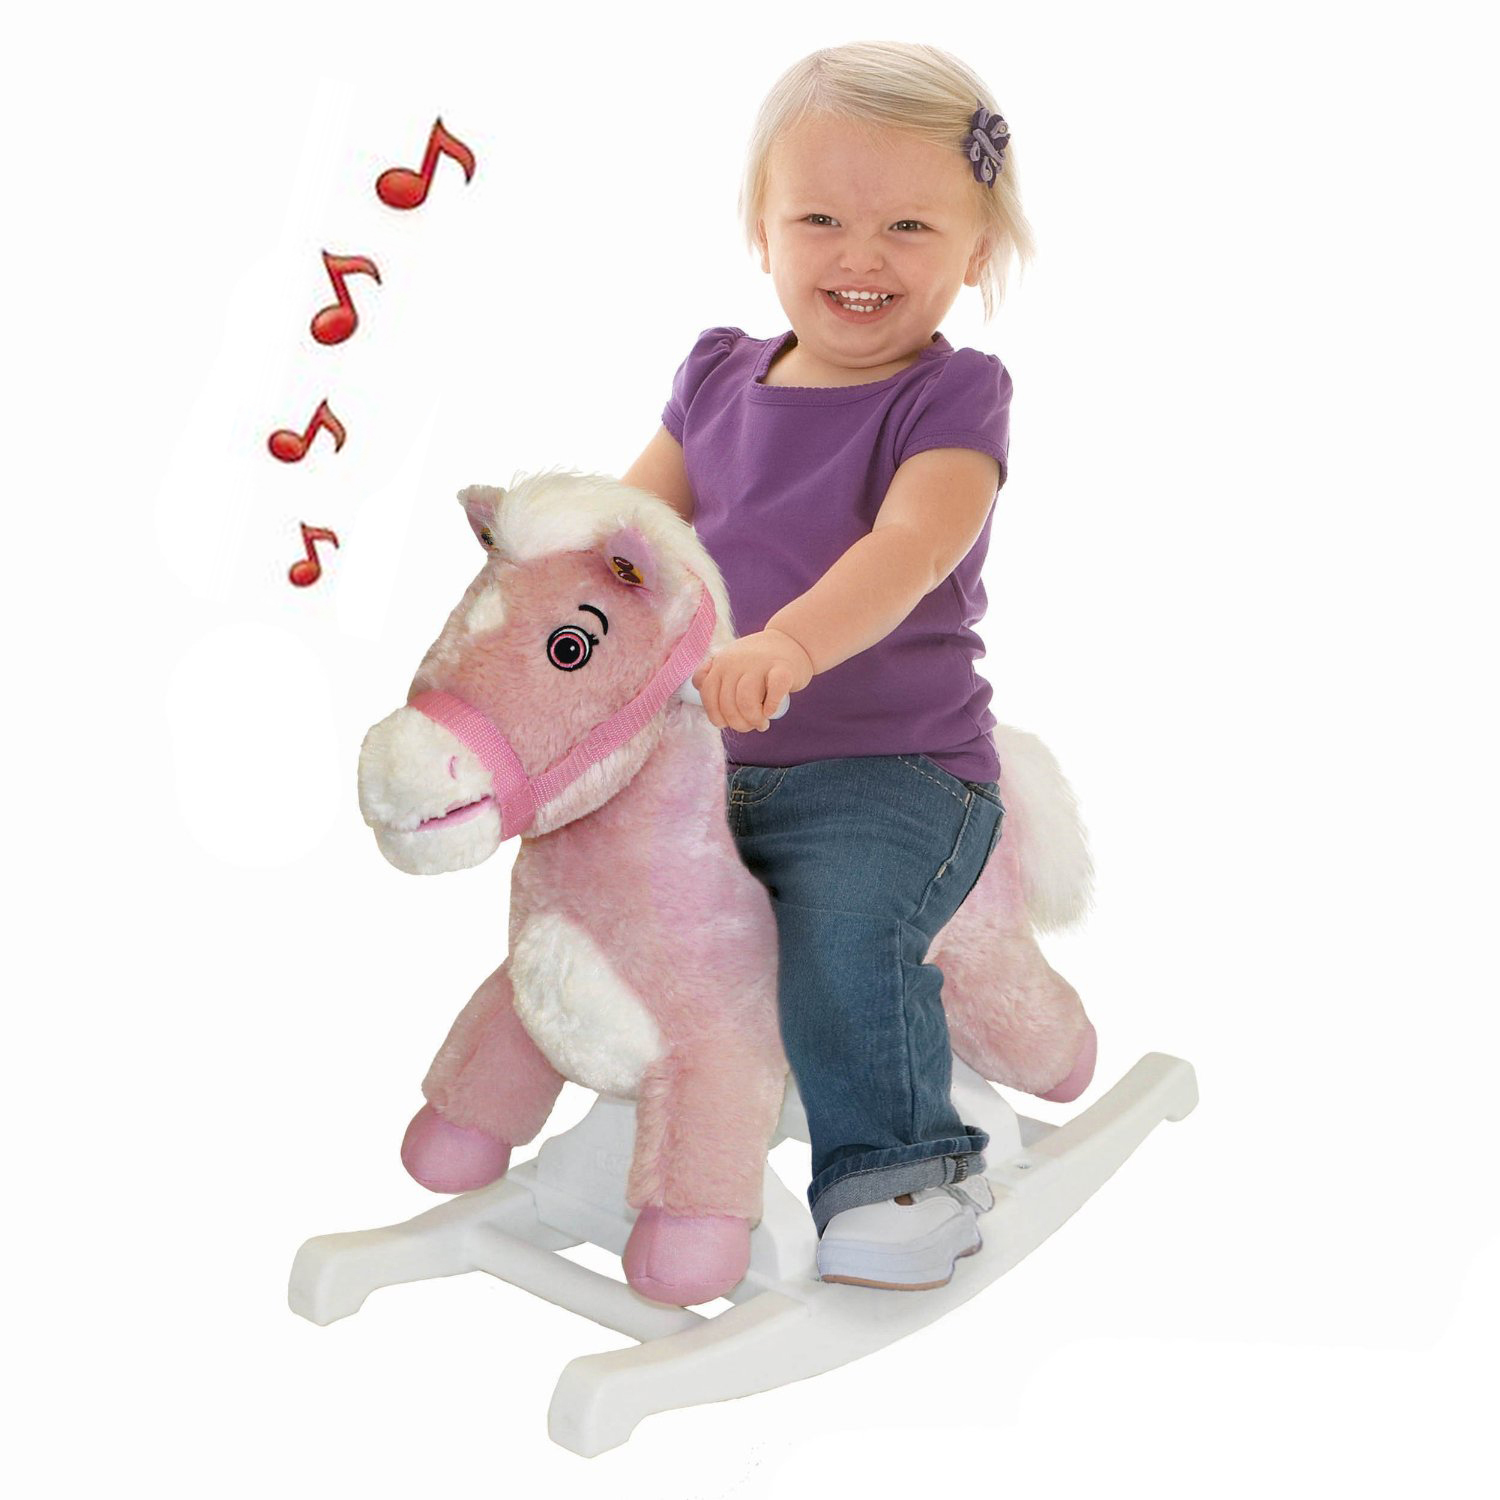 Musical Rocking Horse Pink Pony Child Plush Animated Singing Rocker Girls 1-3 yr